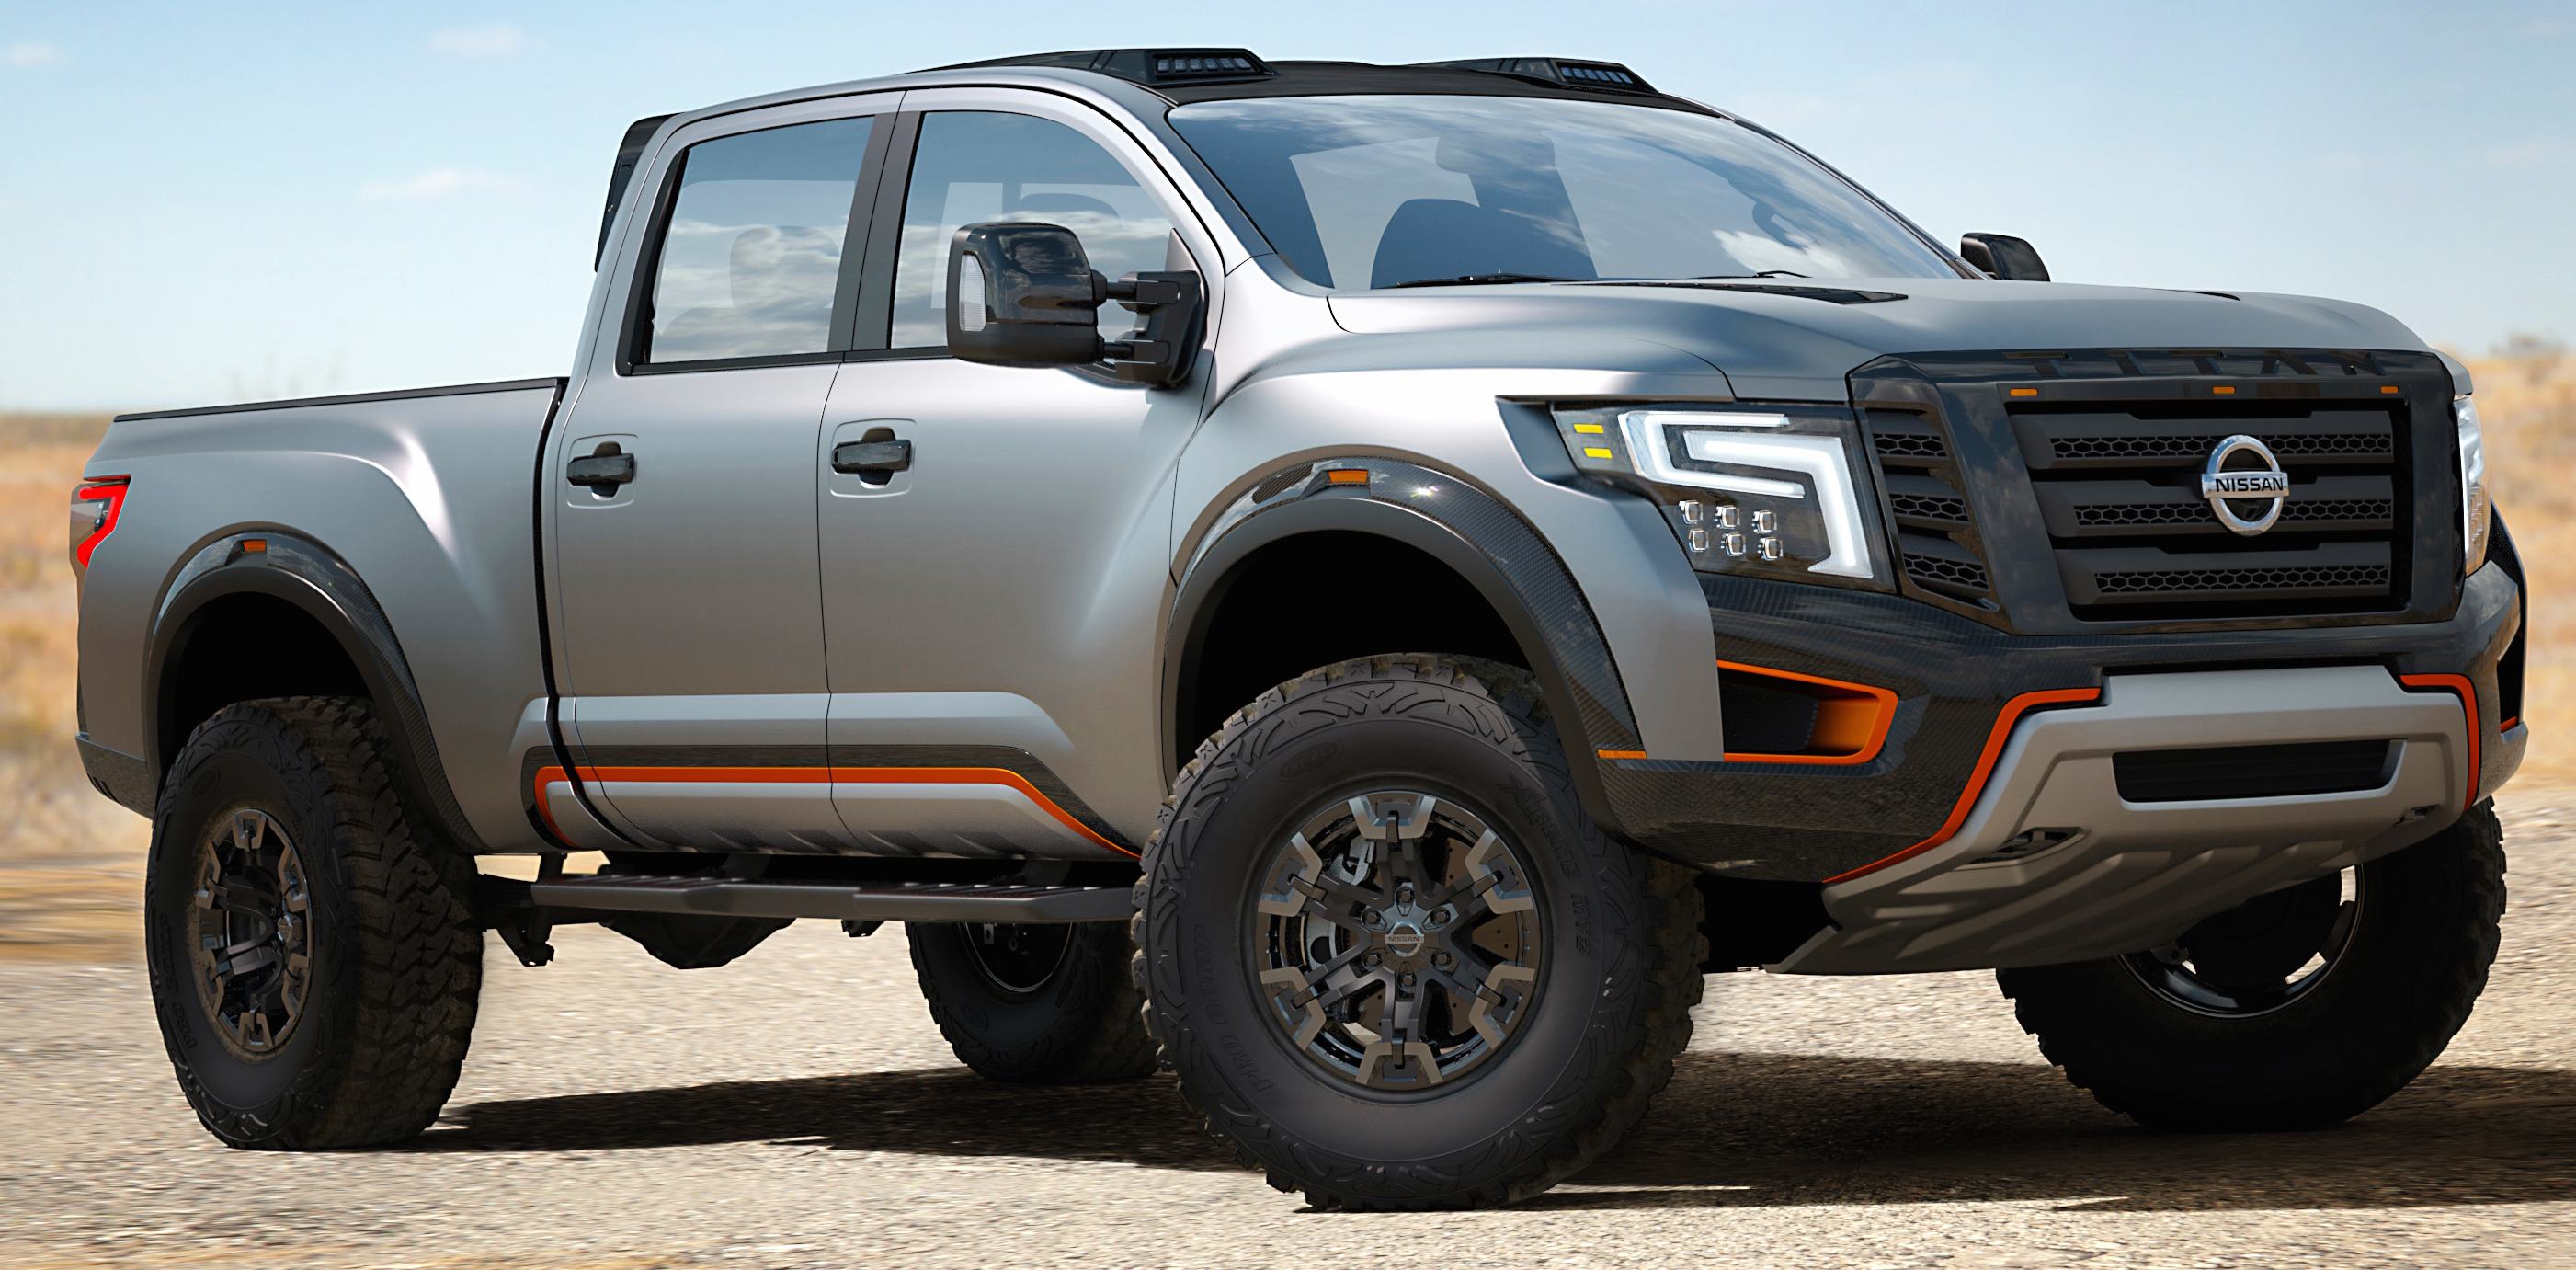 Nissan Titan Warrior Price >> Nissan Titan Warrior Concept Could Make Production